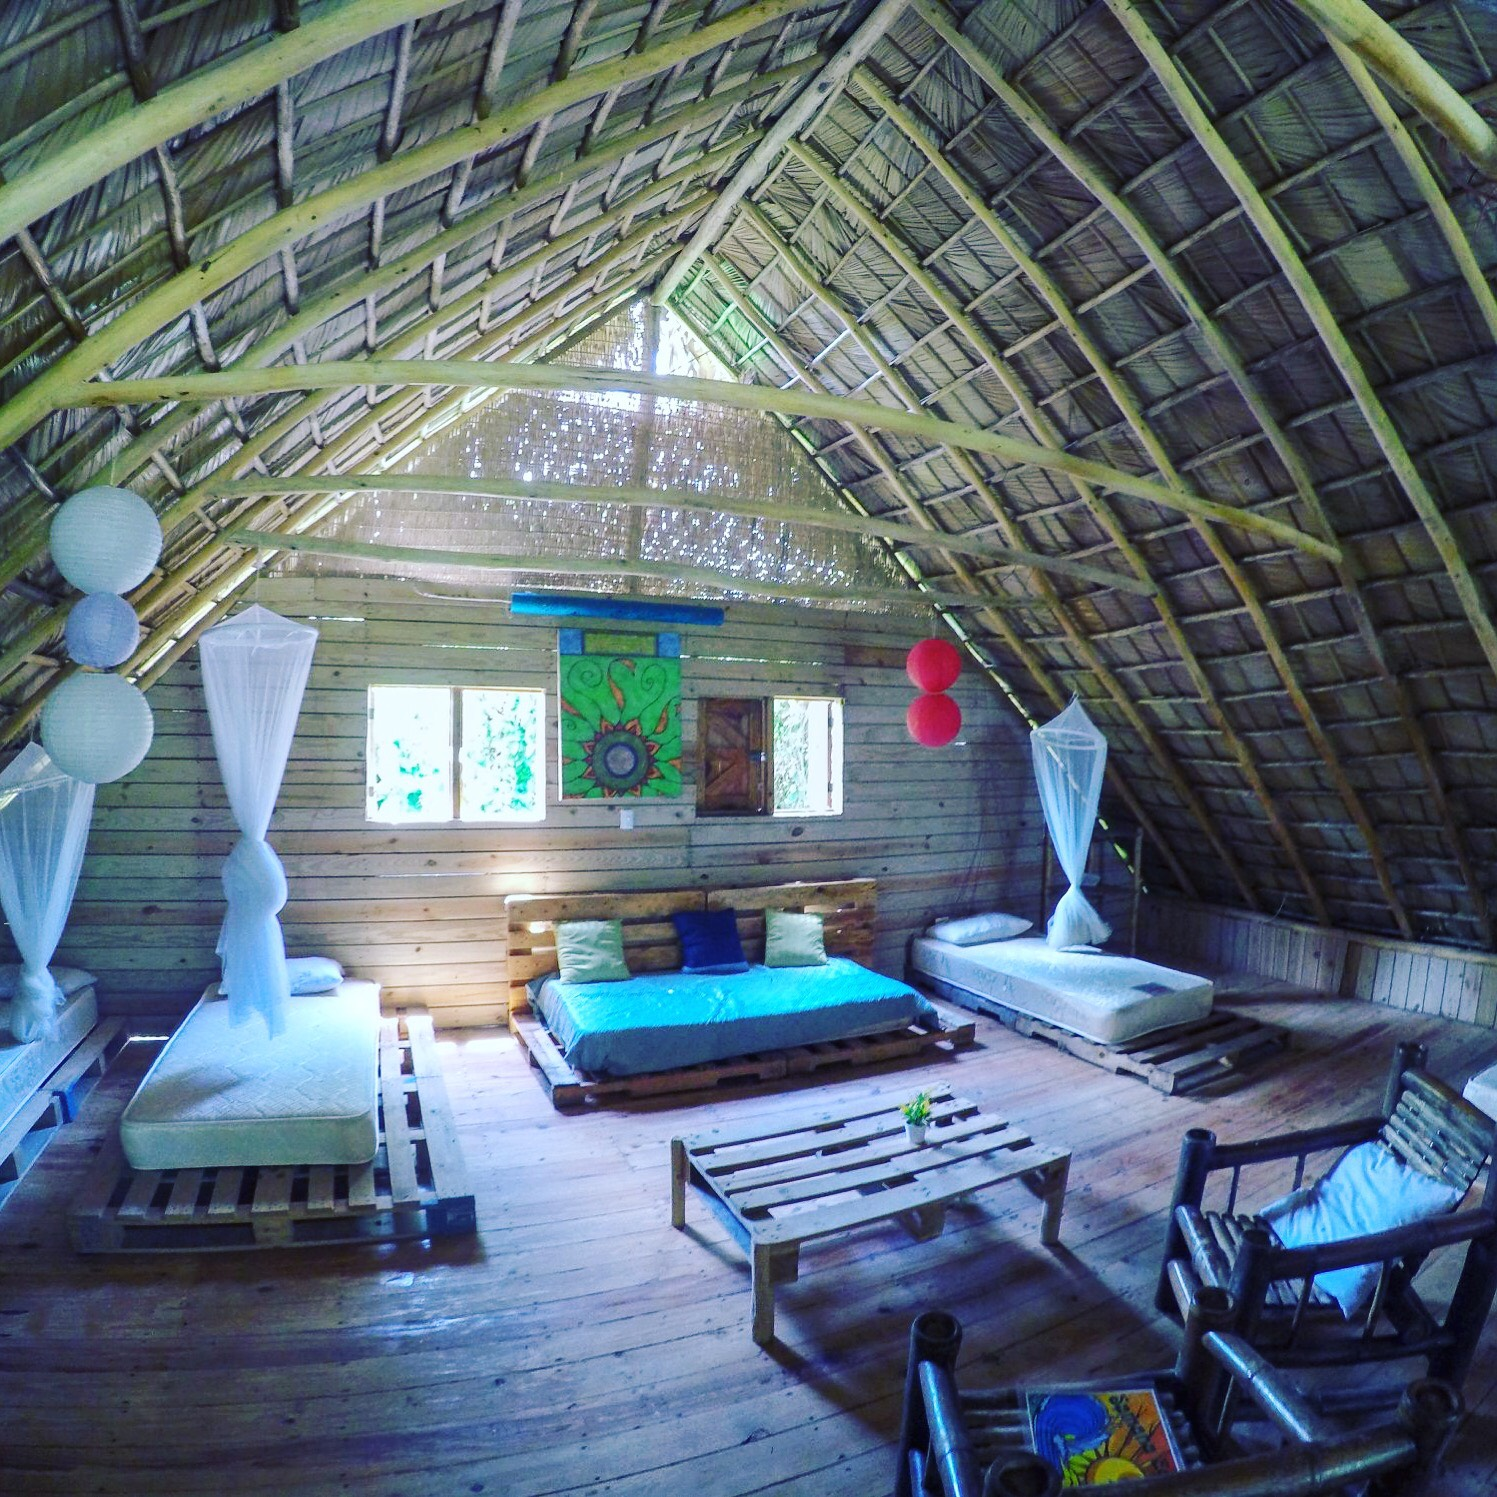 Groups Room - Shared room comes with cosy single bed, mosquito nets, bamboo furniture, balcony swingsShared Room $1250 Per Person